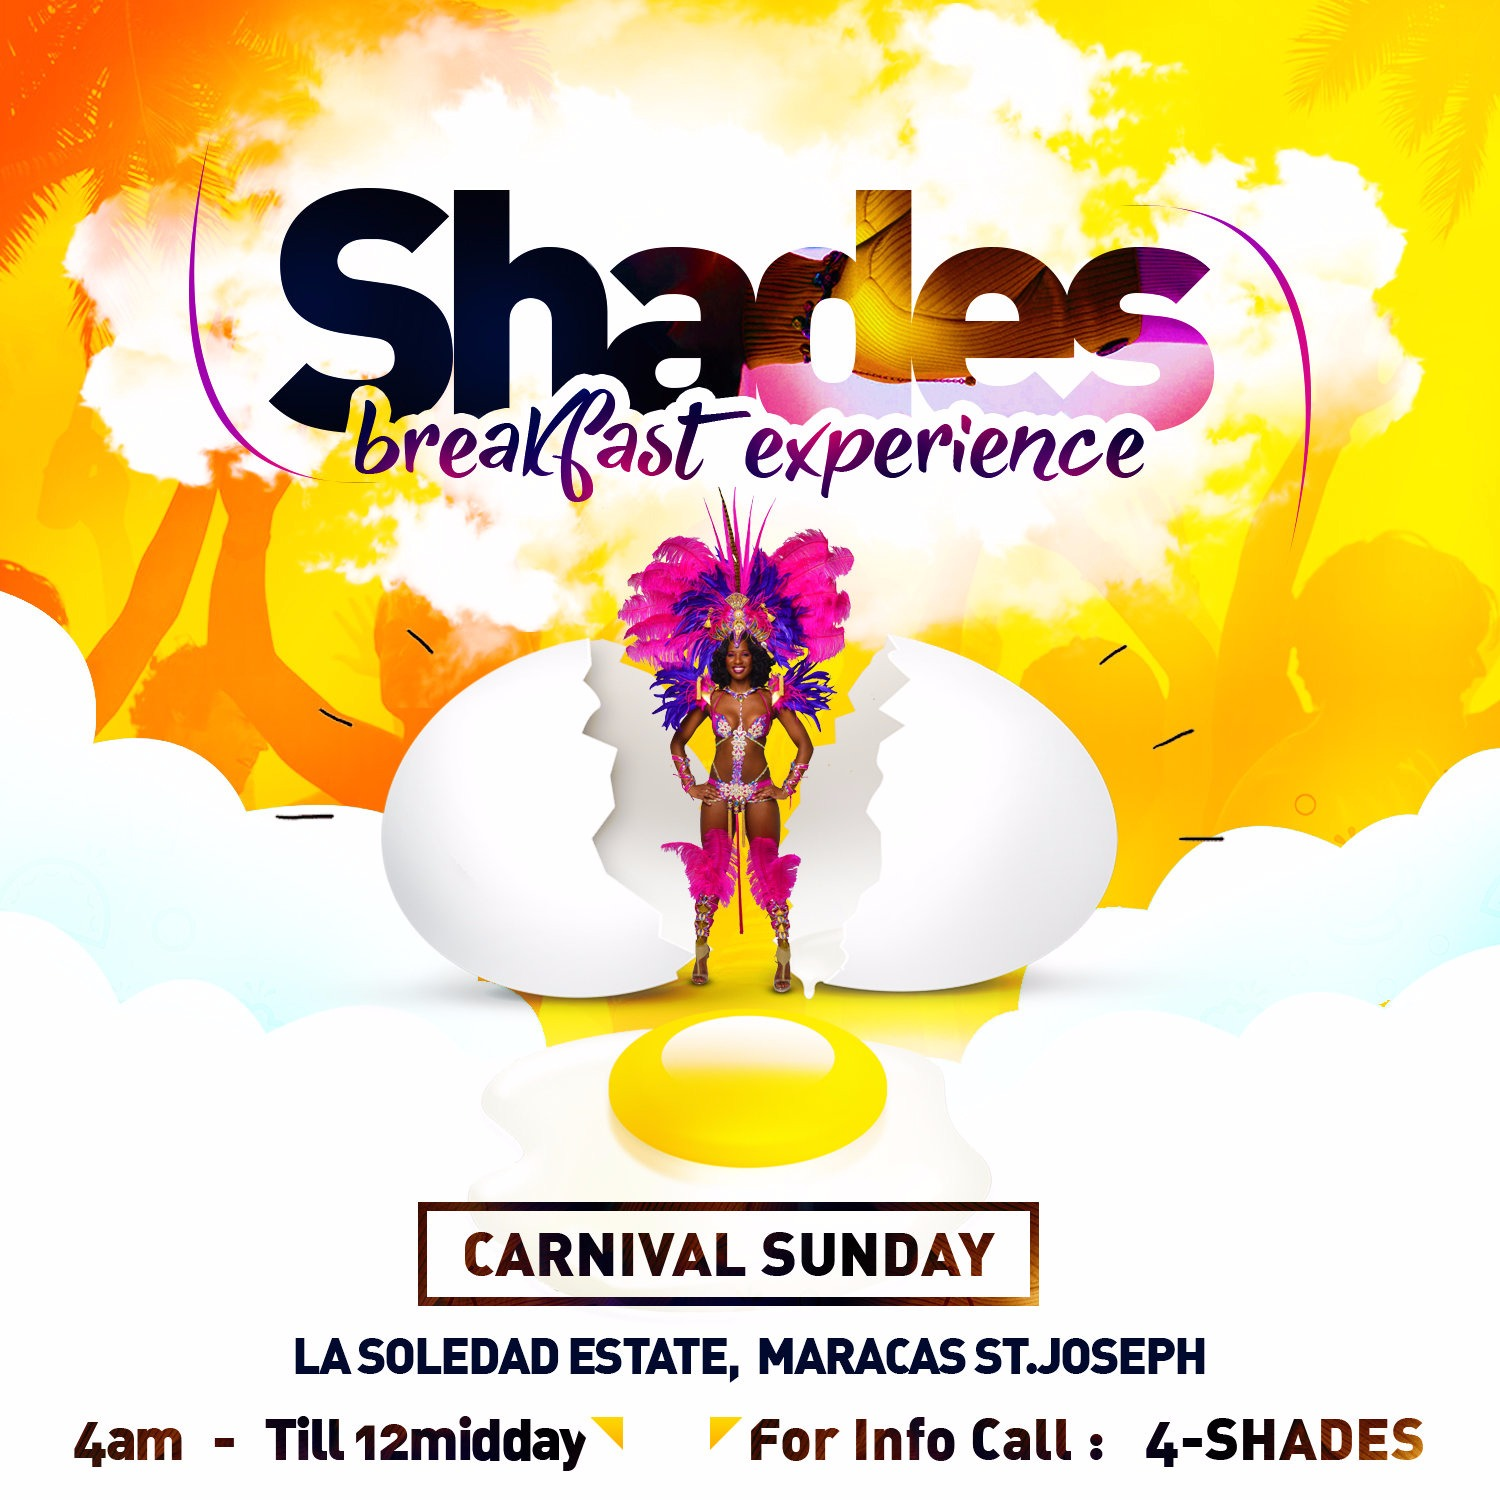 SHADES BREAKFAST EXPERIENCE 2017